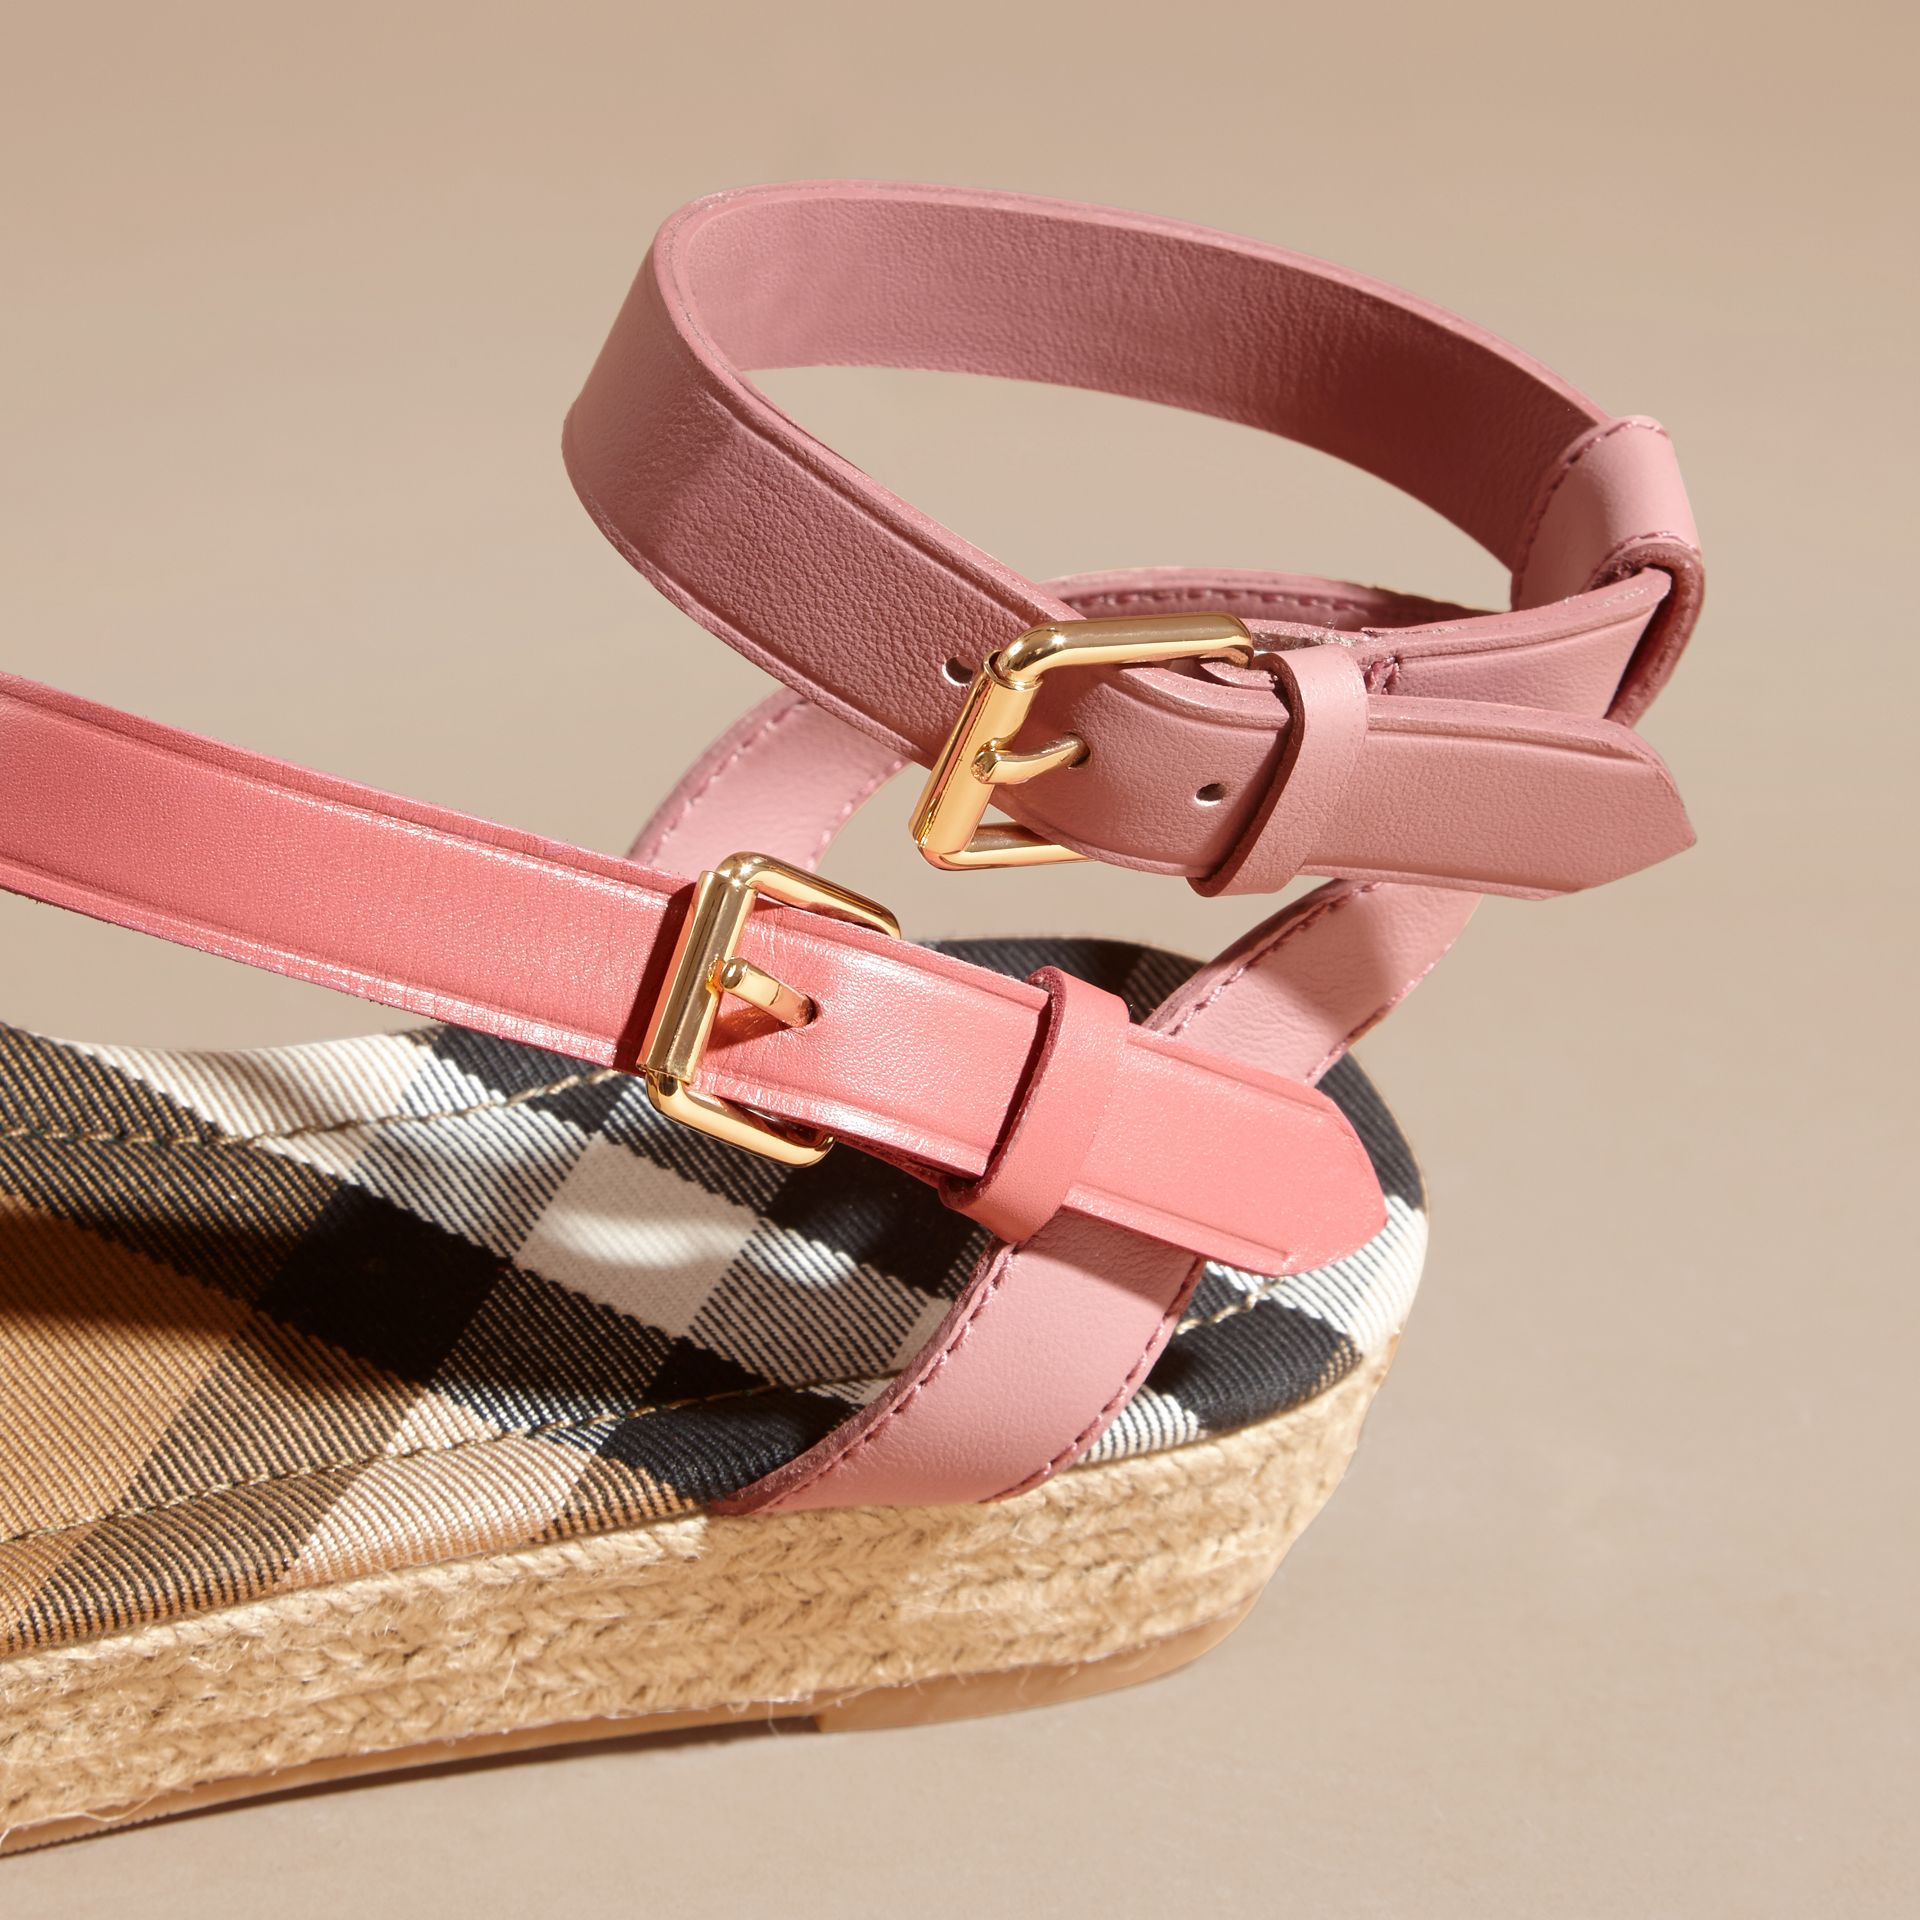 Two-tone Leather Espadrille Sandals in Dusty Pink - Women | Burberry - gallery image 2